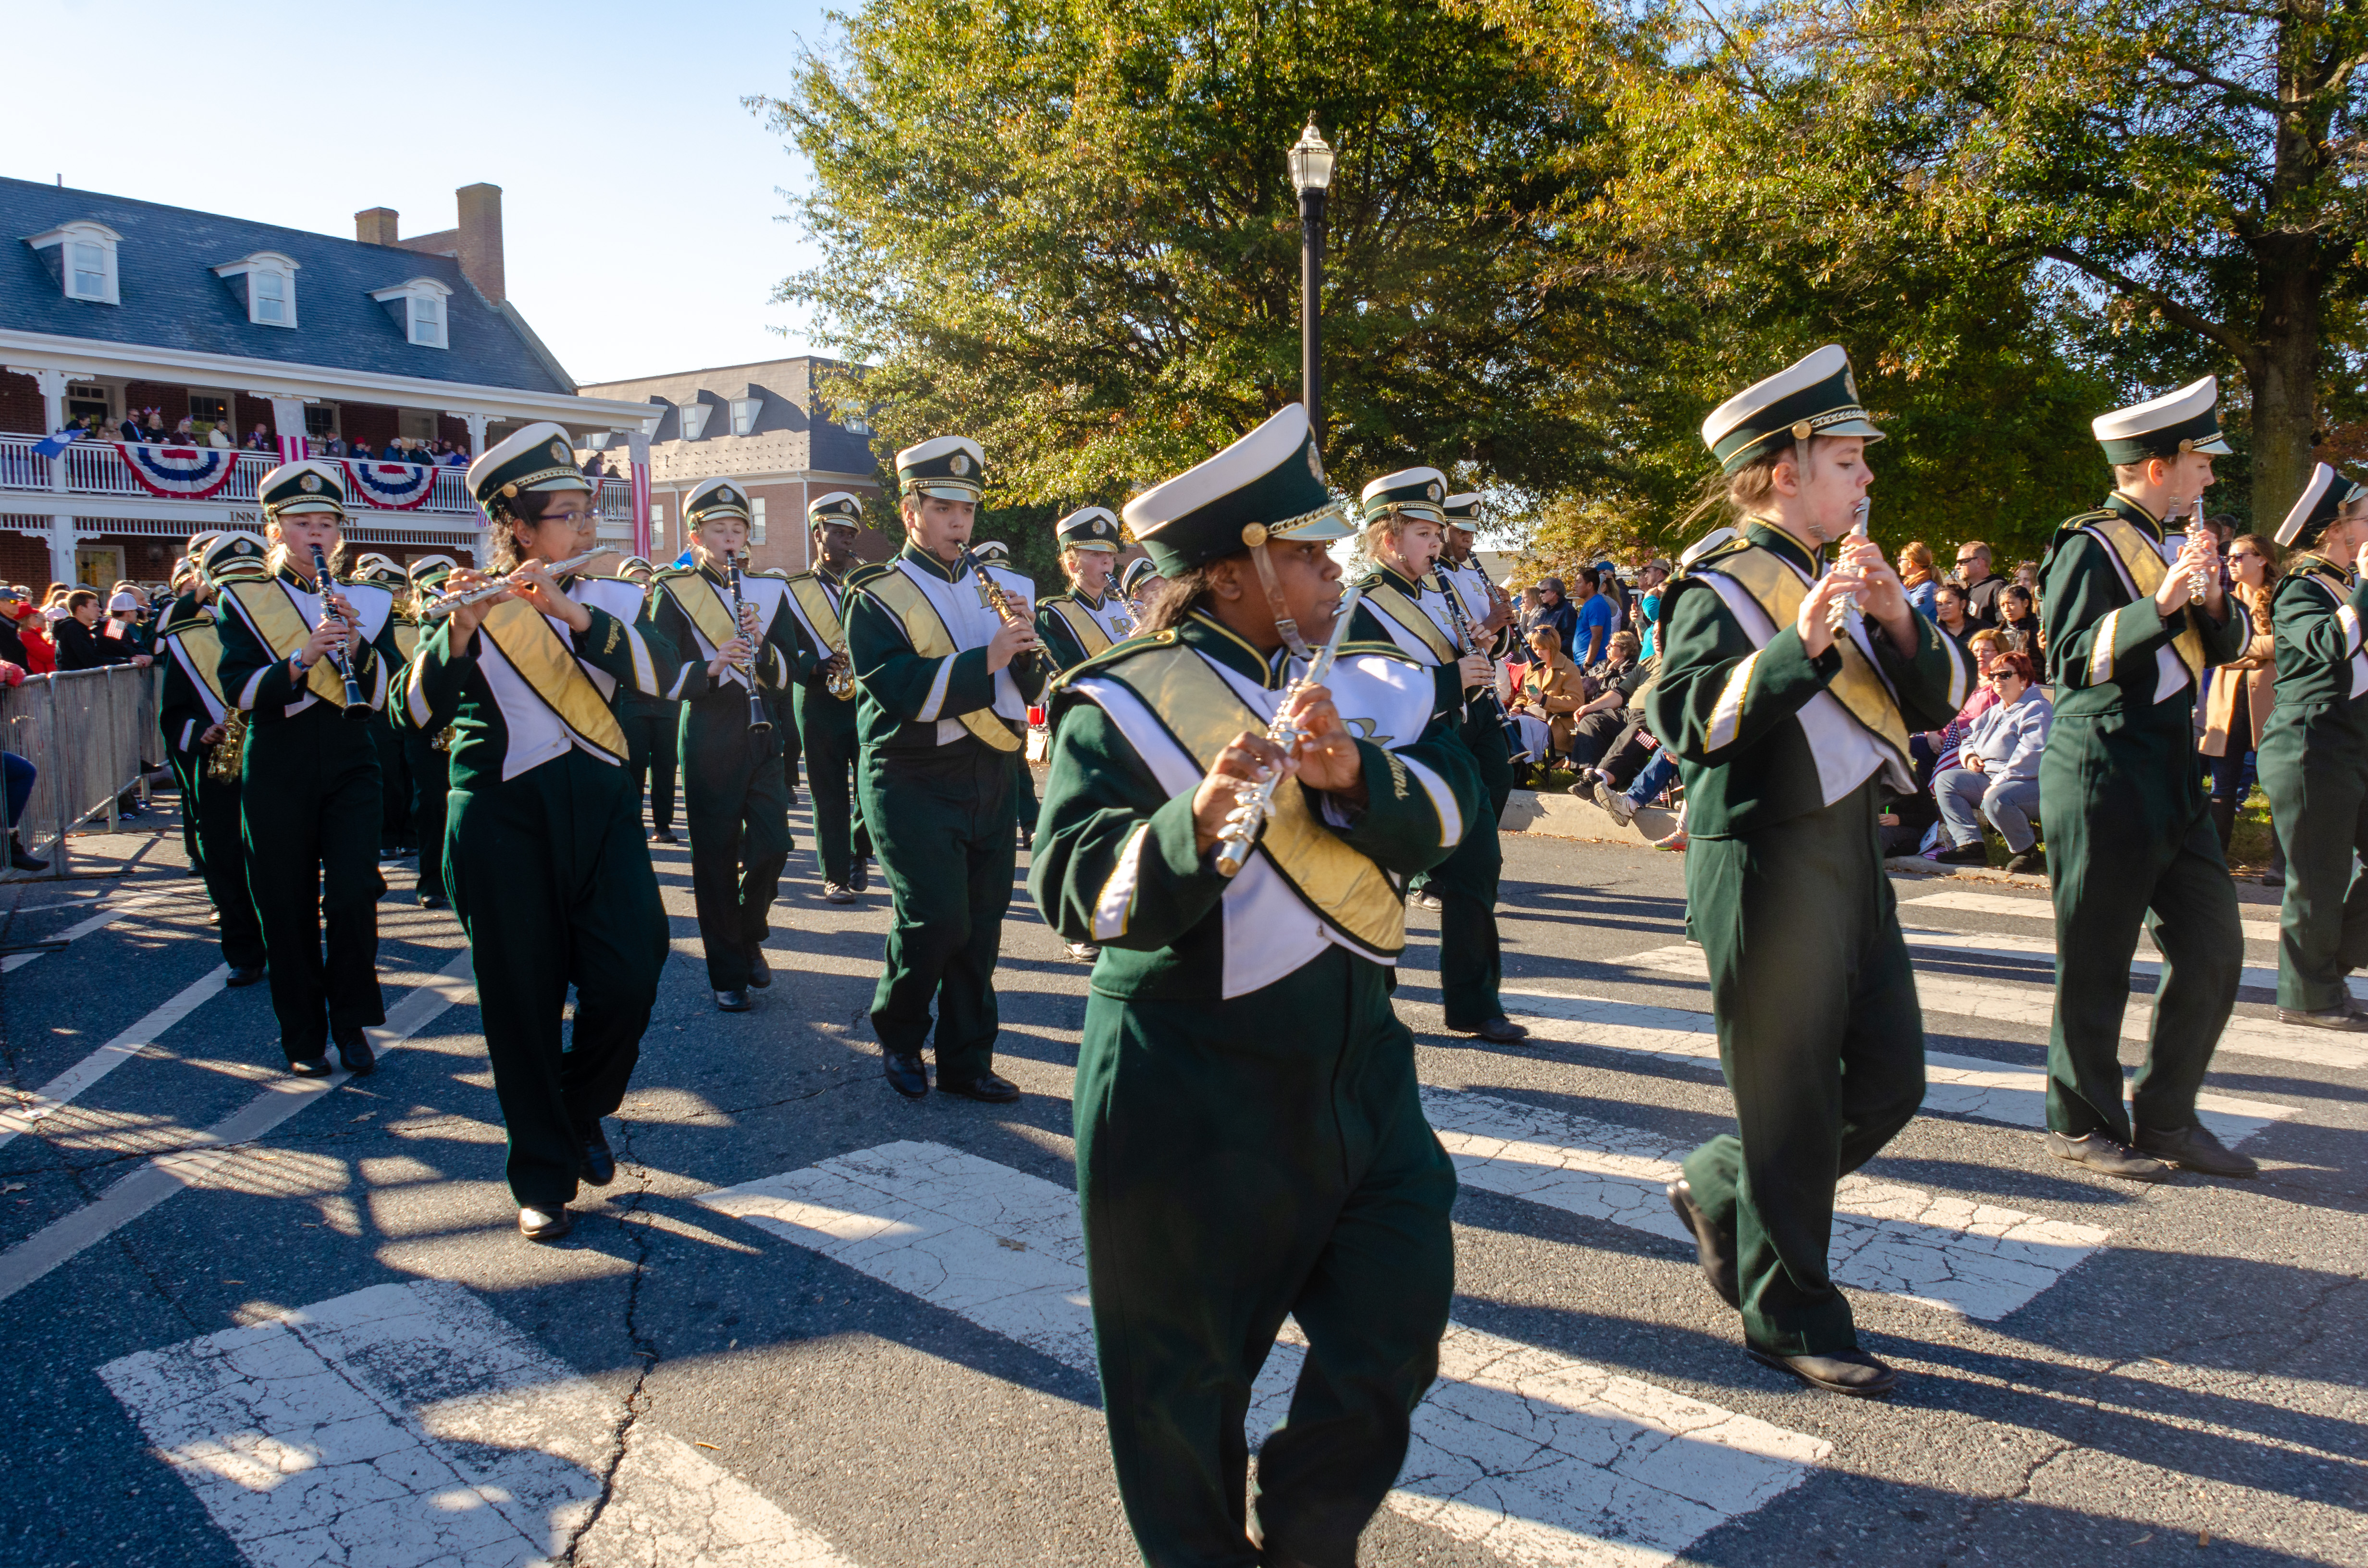 Indian River High School Marching Band performs at the 2018 Return Day Parade in Georgetown.